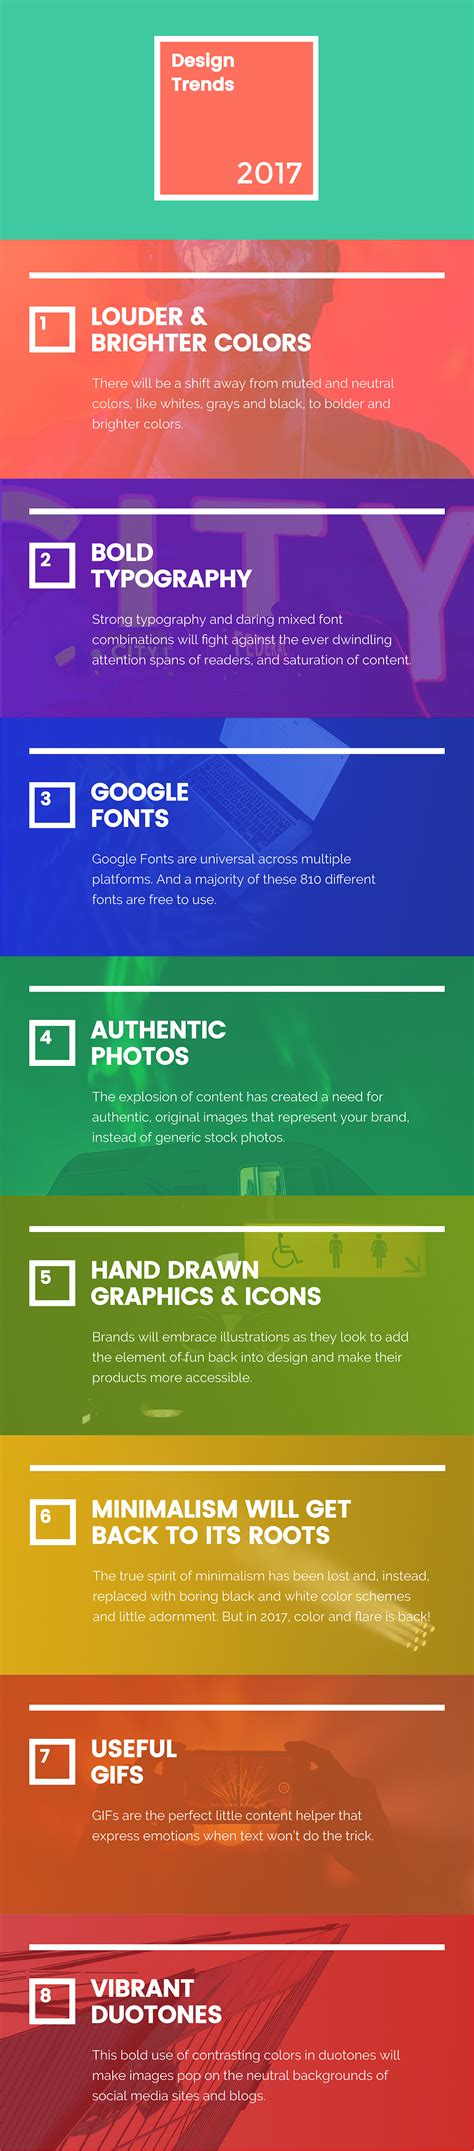 2017 graphic design trends codehints 8 new graphic design trends that will take